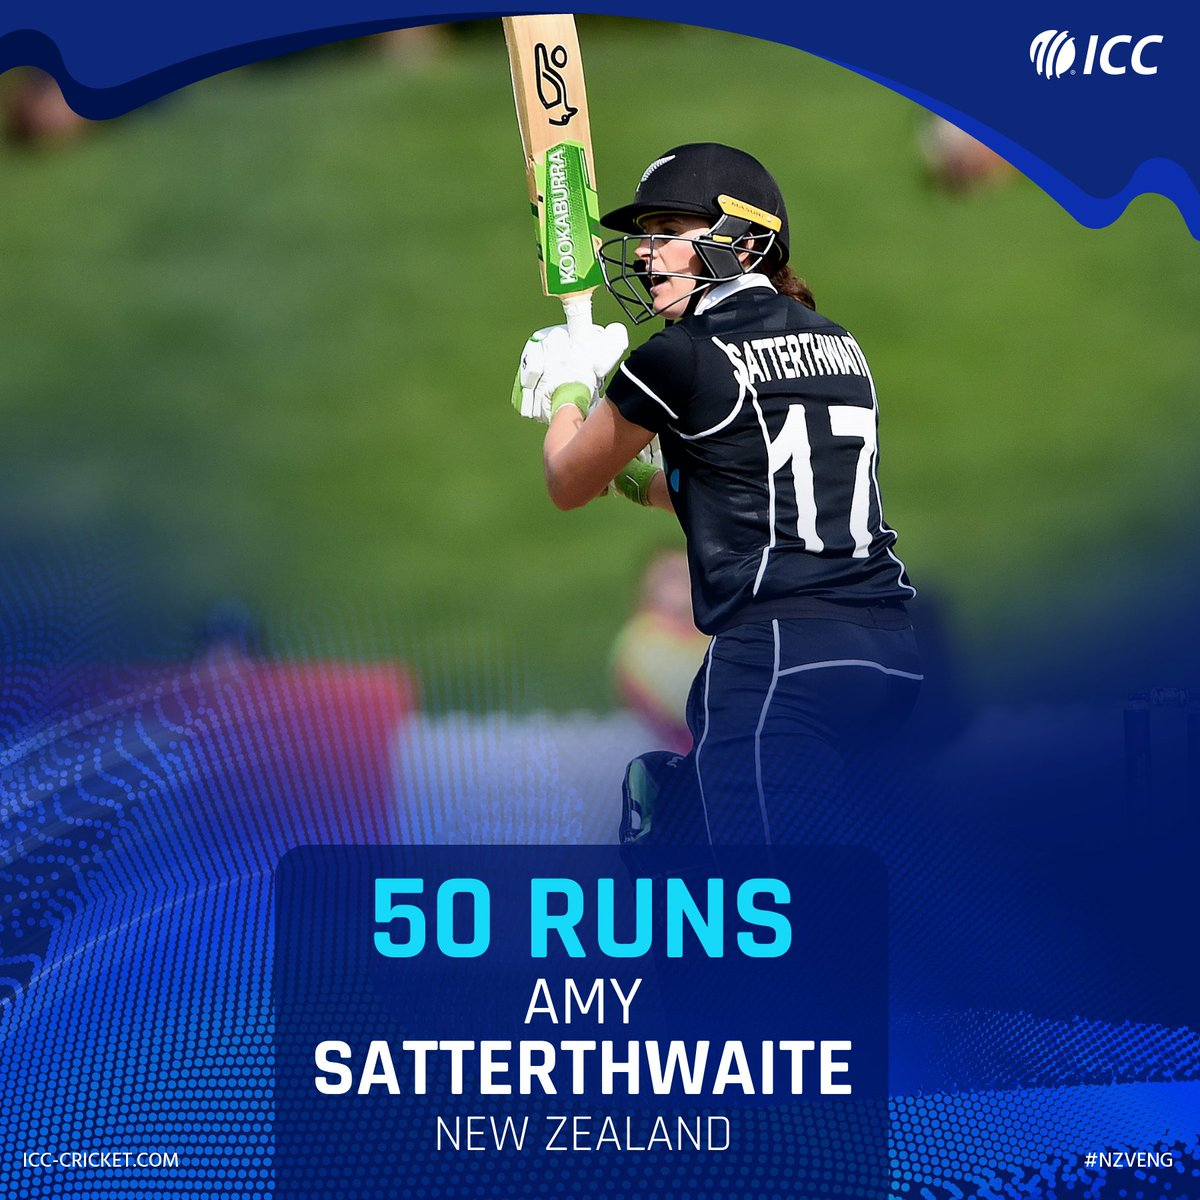 Half-century for Amy Satterthwaite 👏  It's her 23rd fifty in ODIs, and it has put New Zealand on course in their chase of 221.  #NZvENG